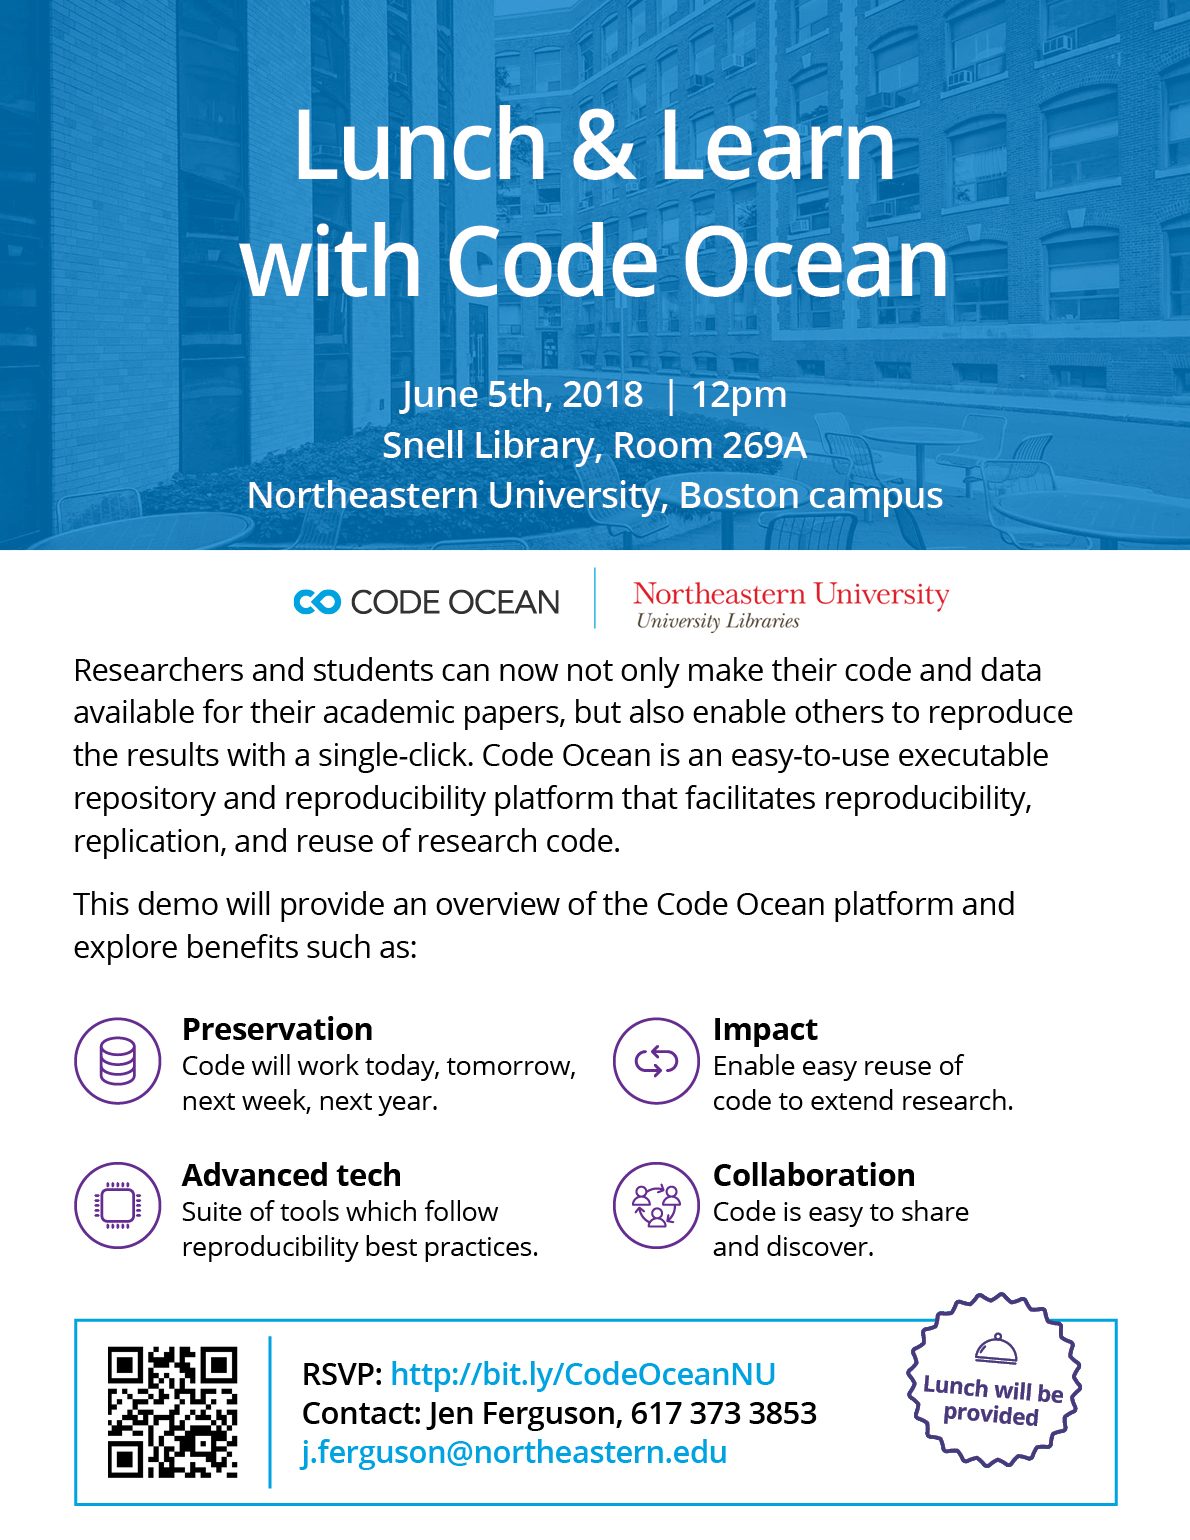 Lunch & Learn with Code Ocean